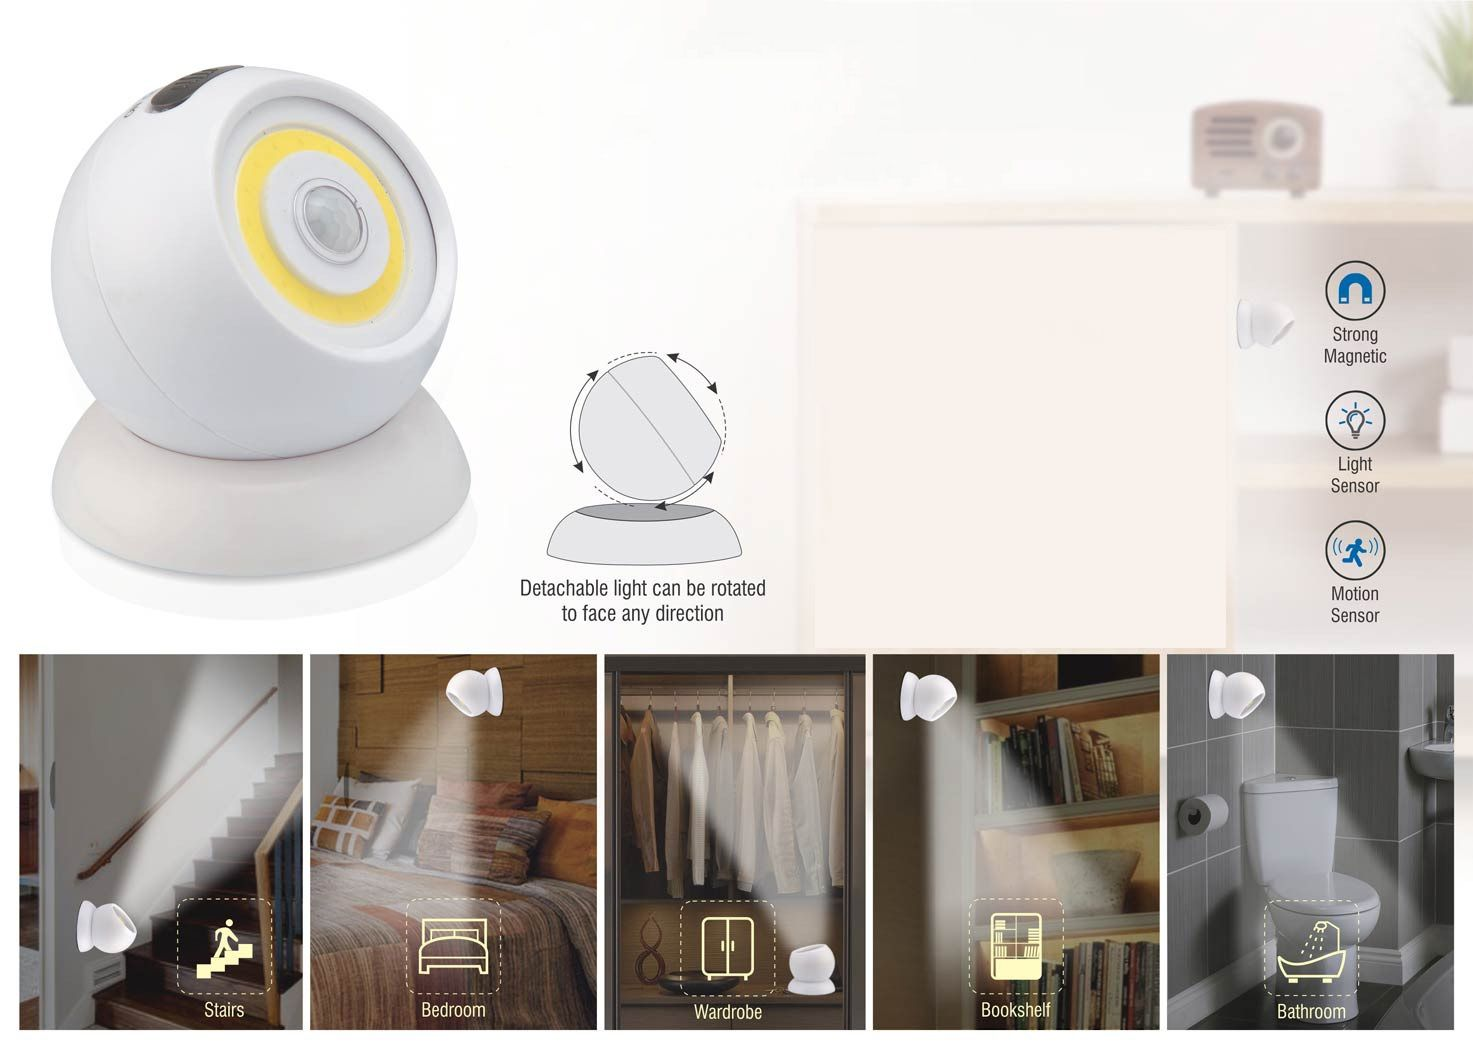 Power Plus Magnetic 720 Degree Sensor Light With Motion Sensor (With Detachable Magnetic Stand) E208s White